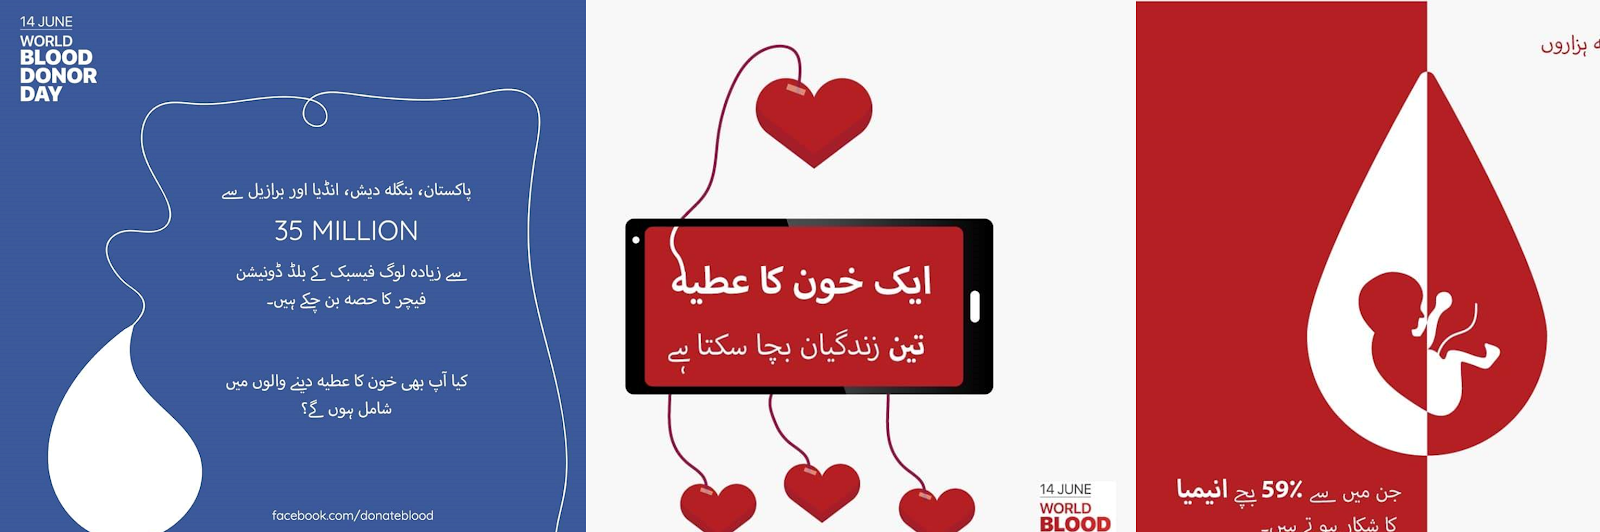 Pakistan Marks World Blood Donor Day with Campaigns, 2 Million Signed Up On Facebook